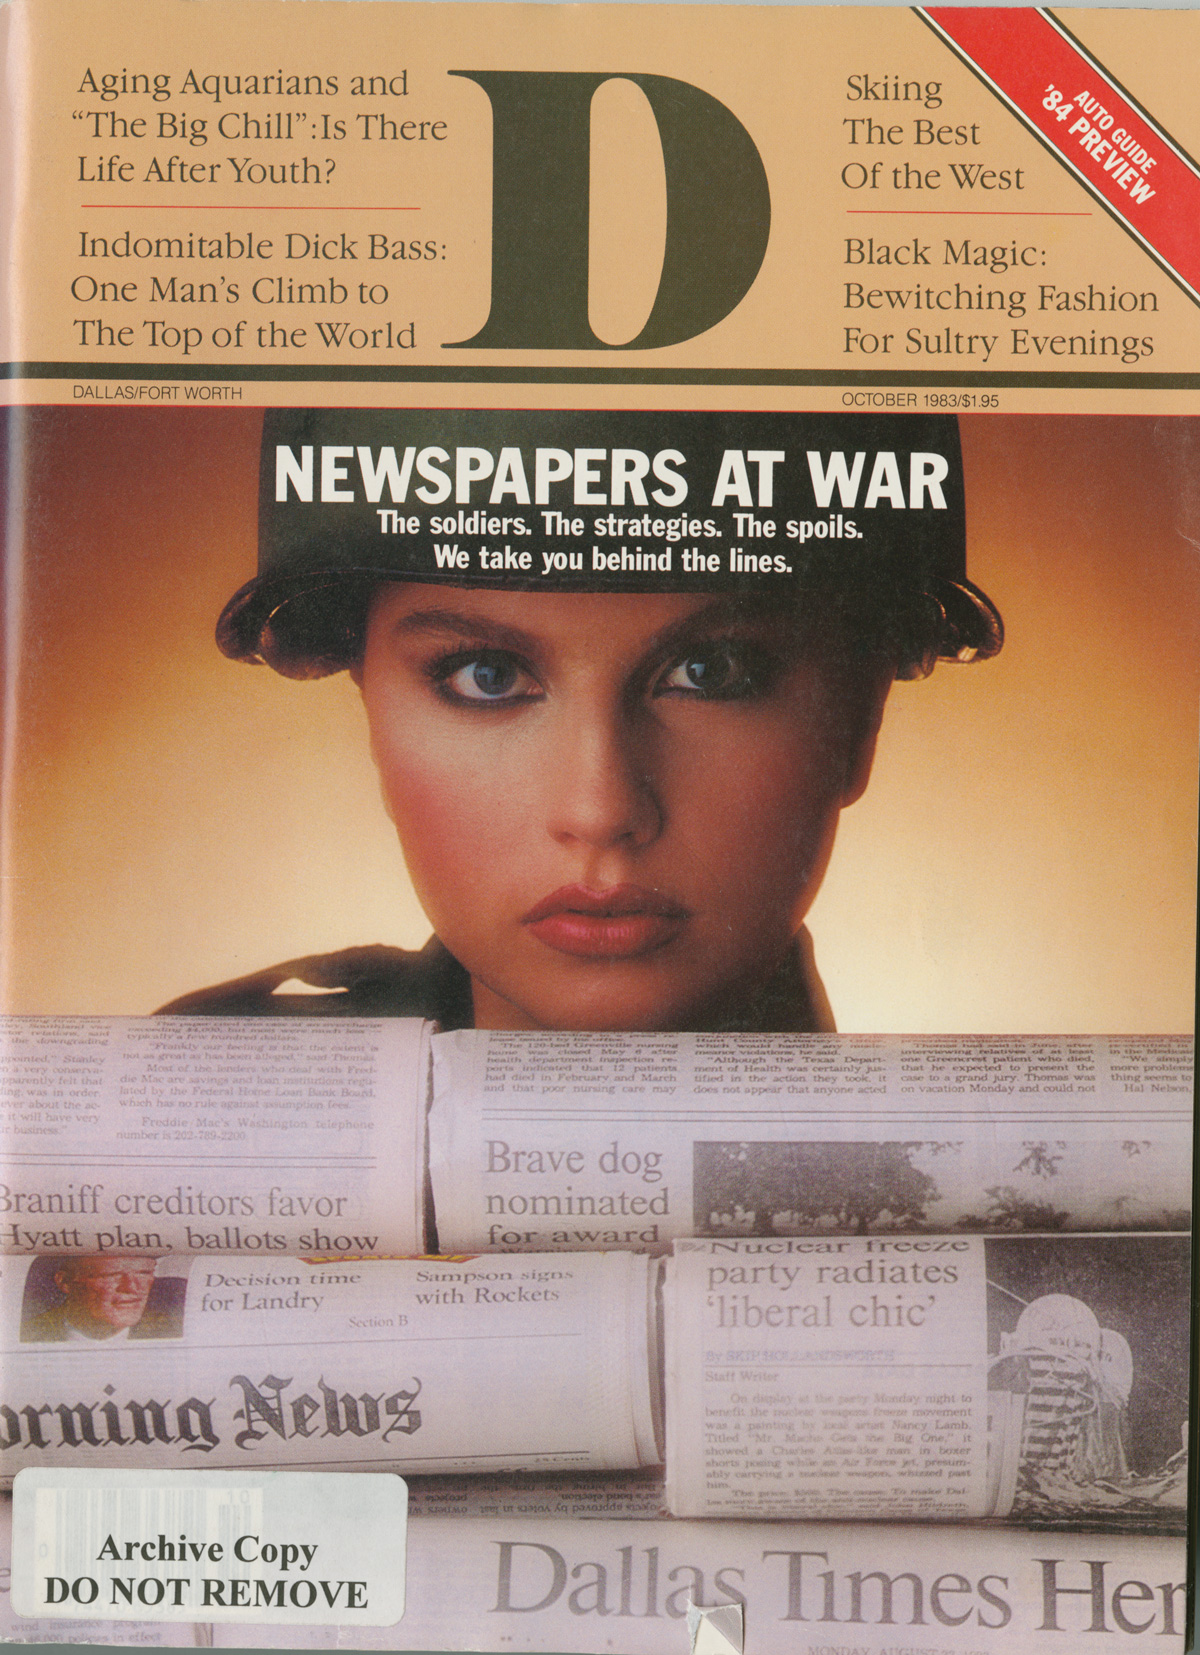 October 1983 cover